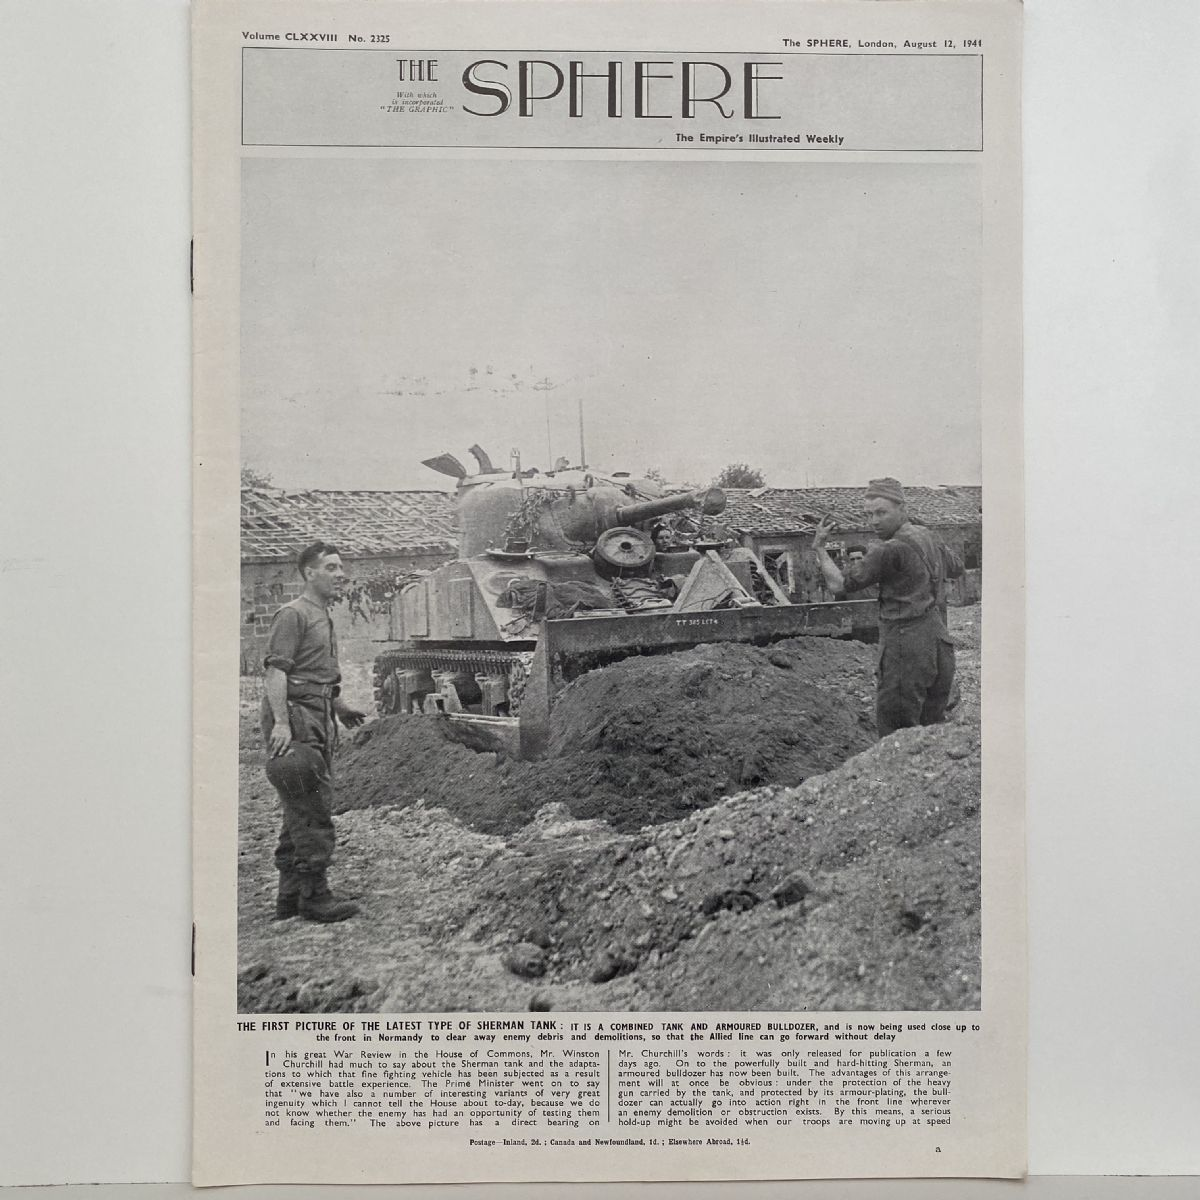 THE SPHERE The Empire's Illustrated Weekly. August 12,1944. No. 2325